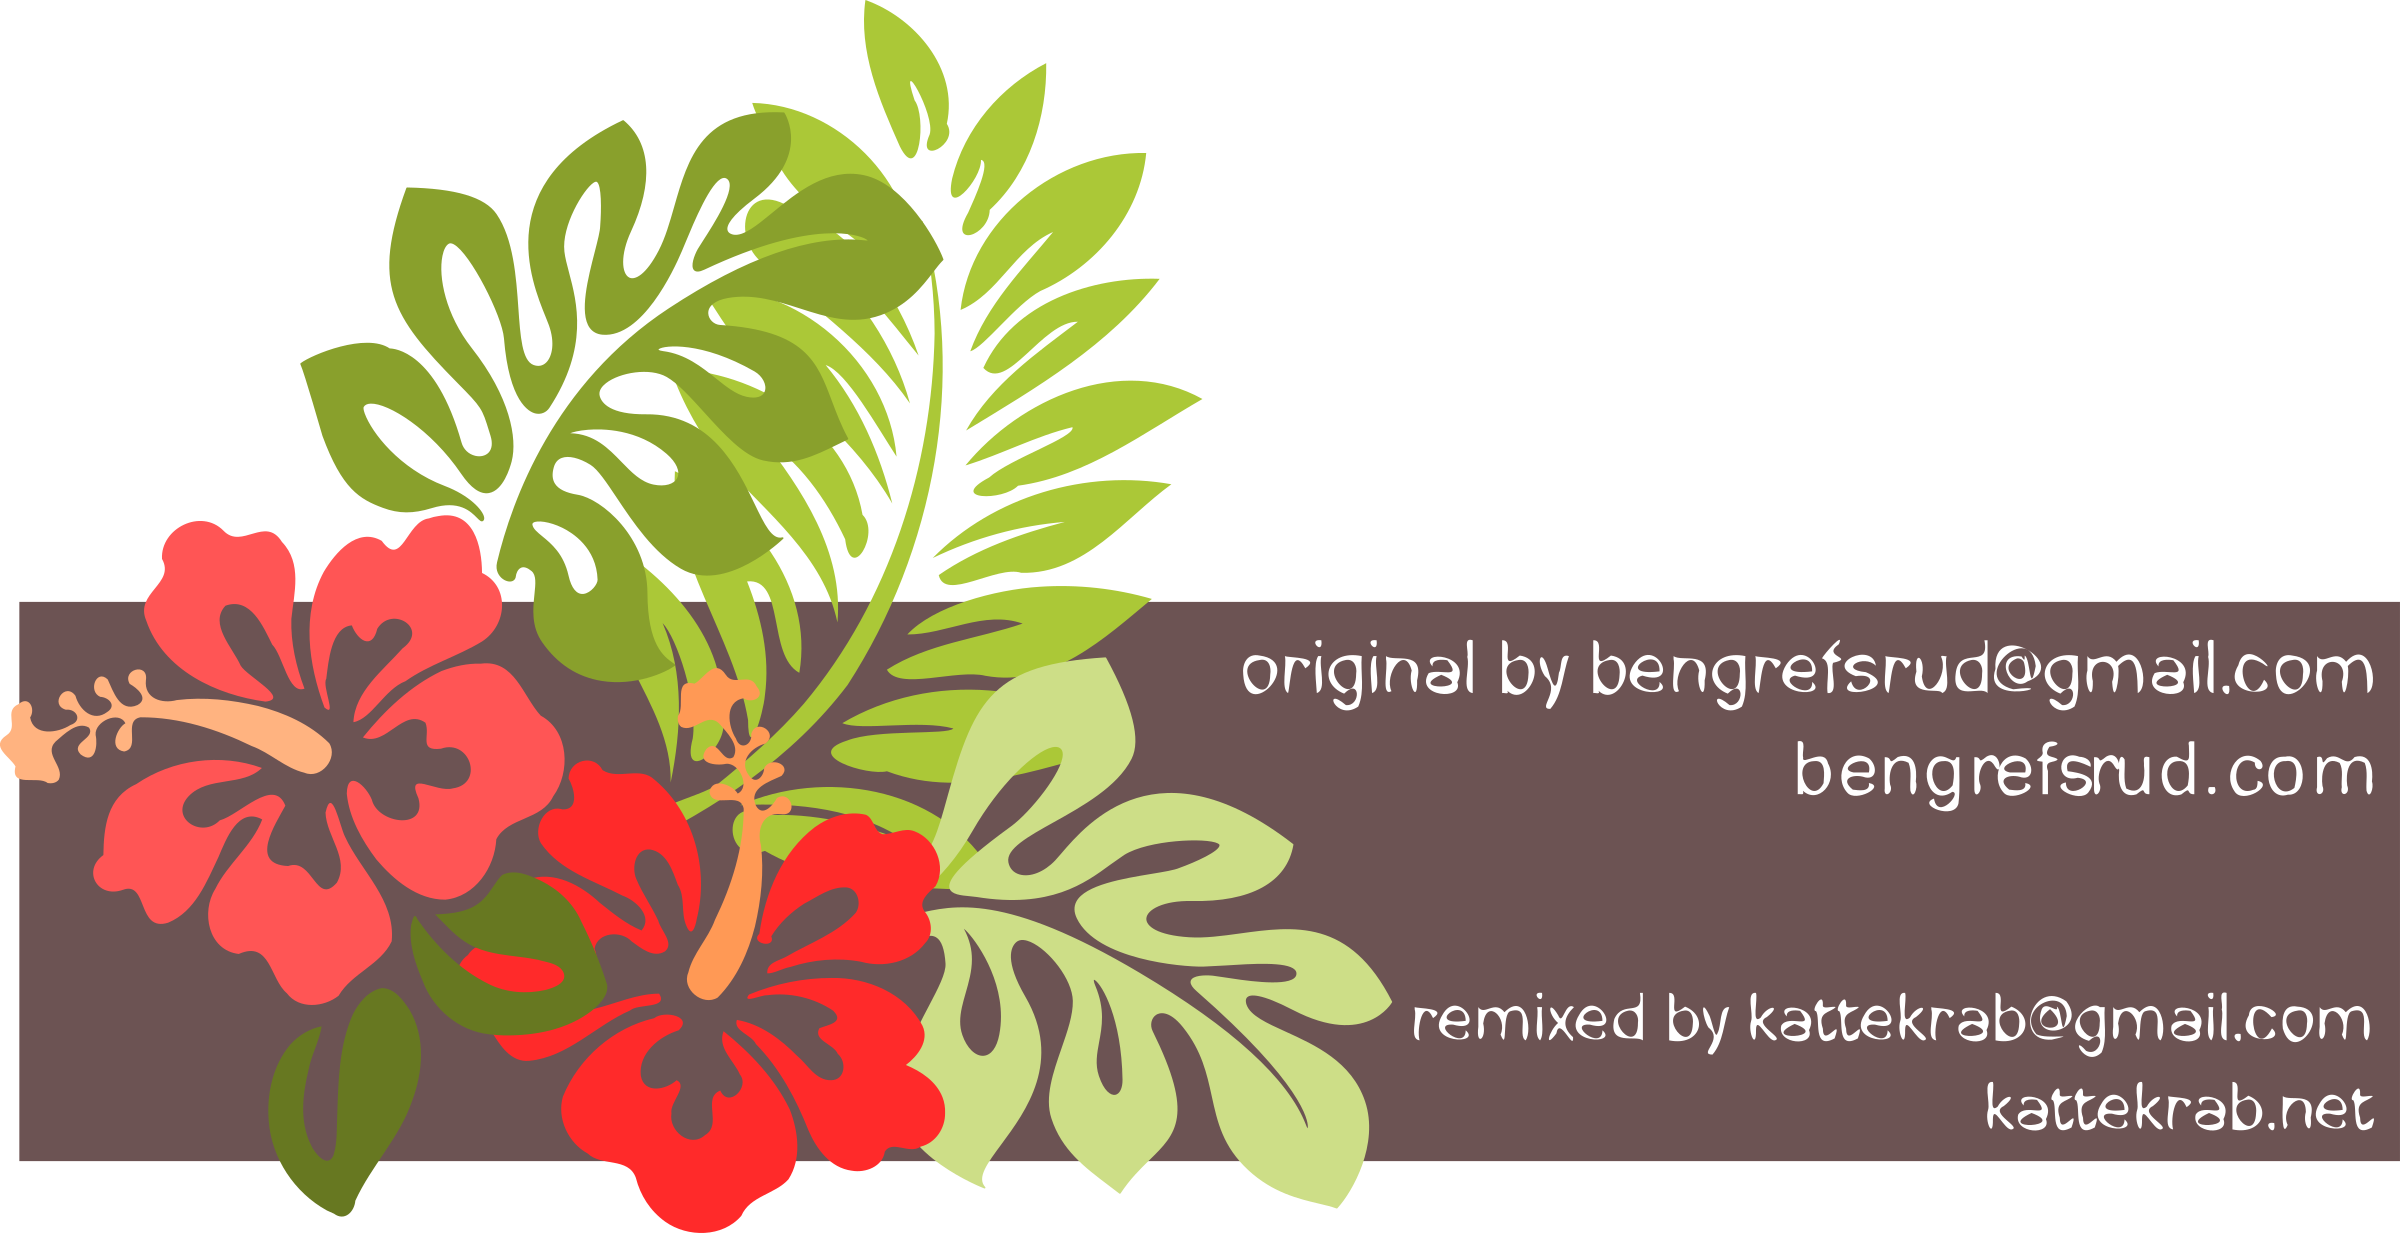 Hibiscus Remixed by kattekrab